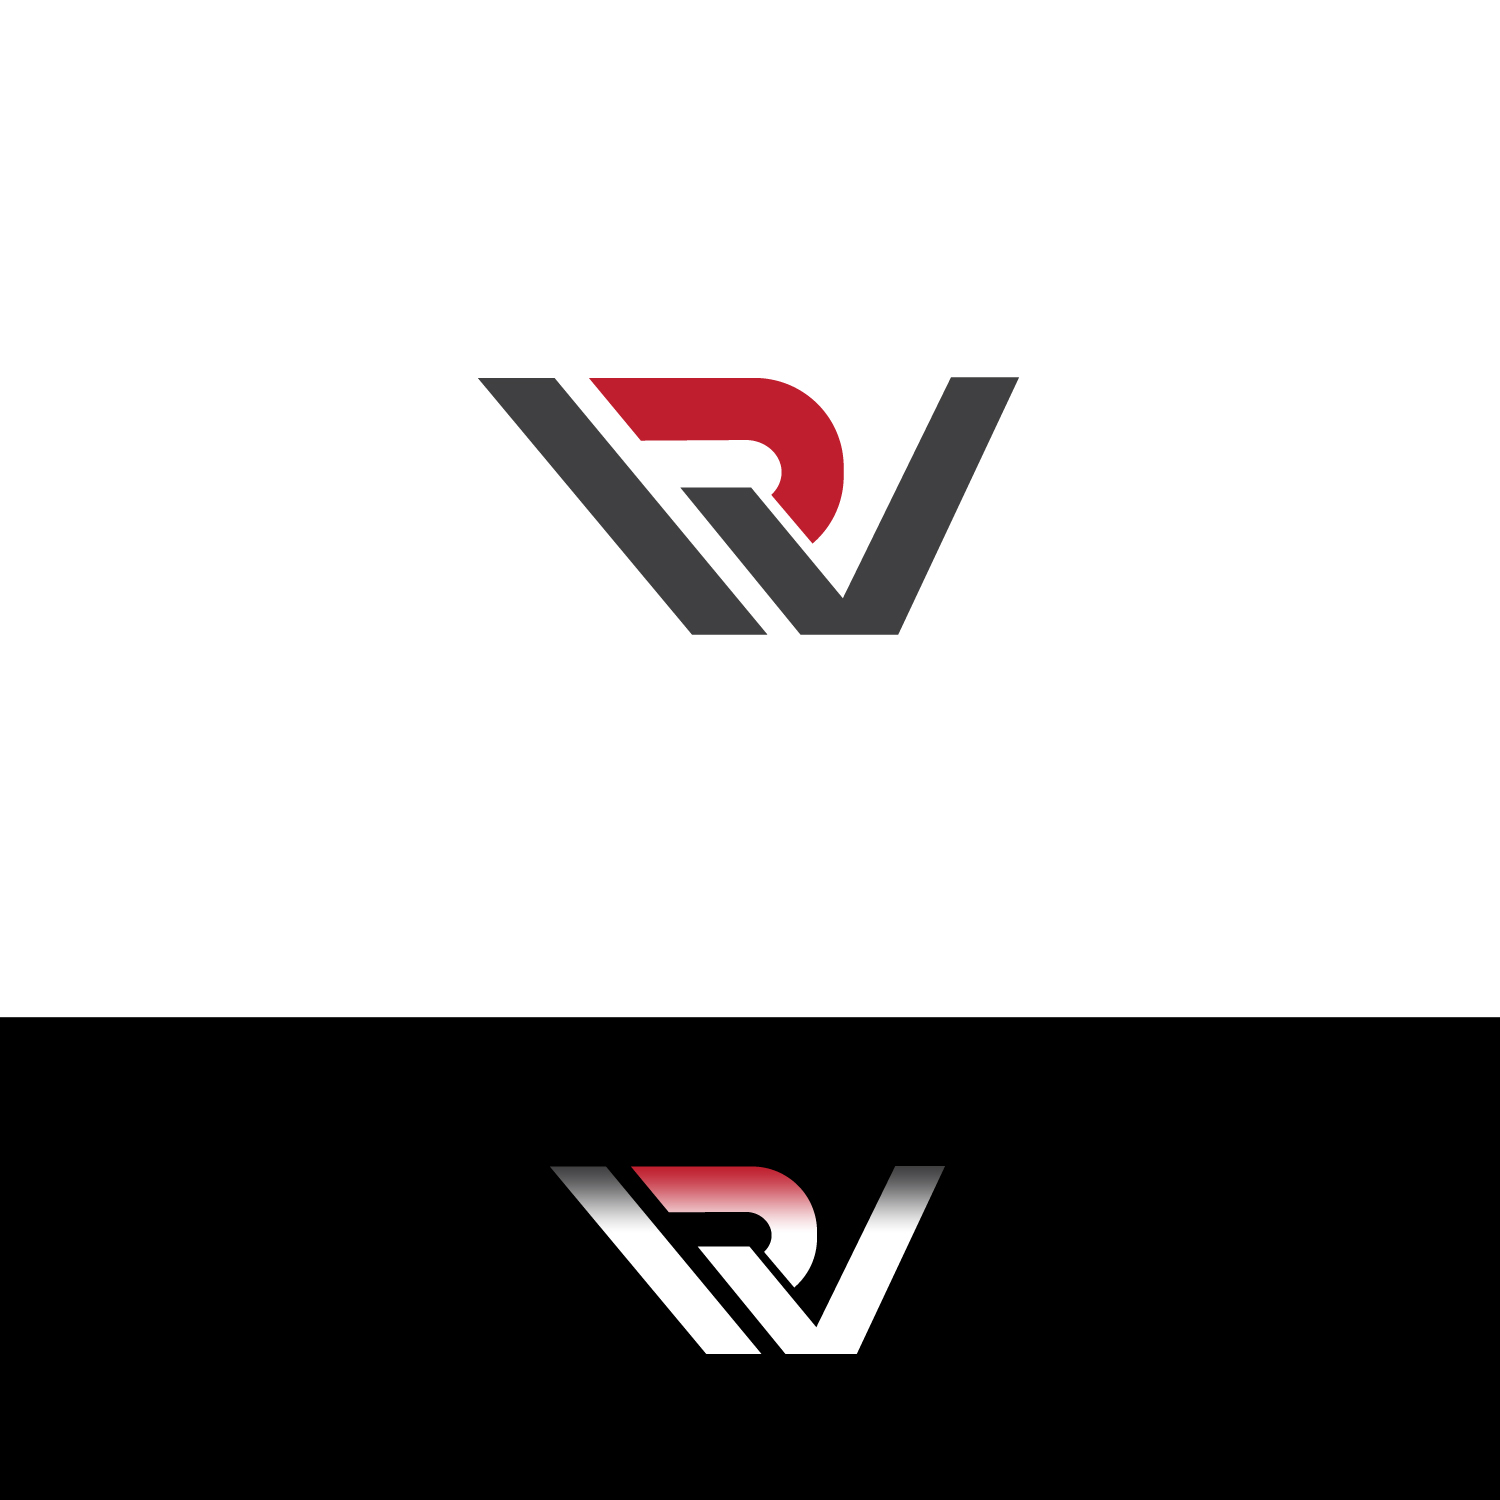 Elegant, Playful, It Professional Logo Design for RW and.